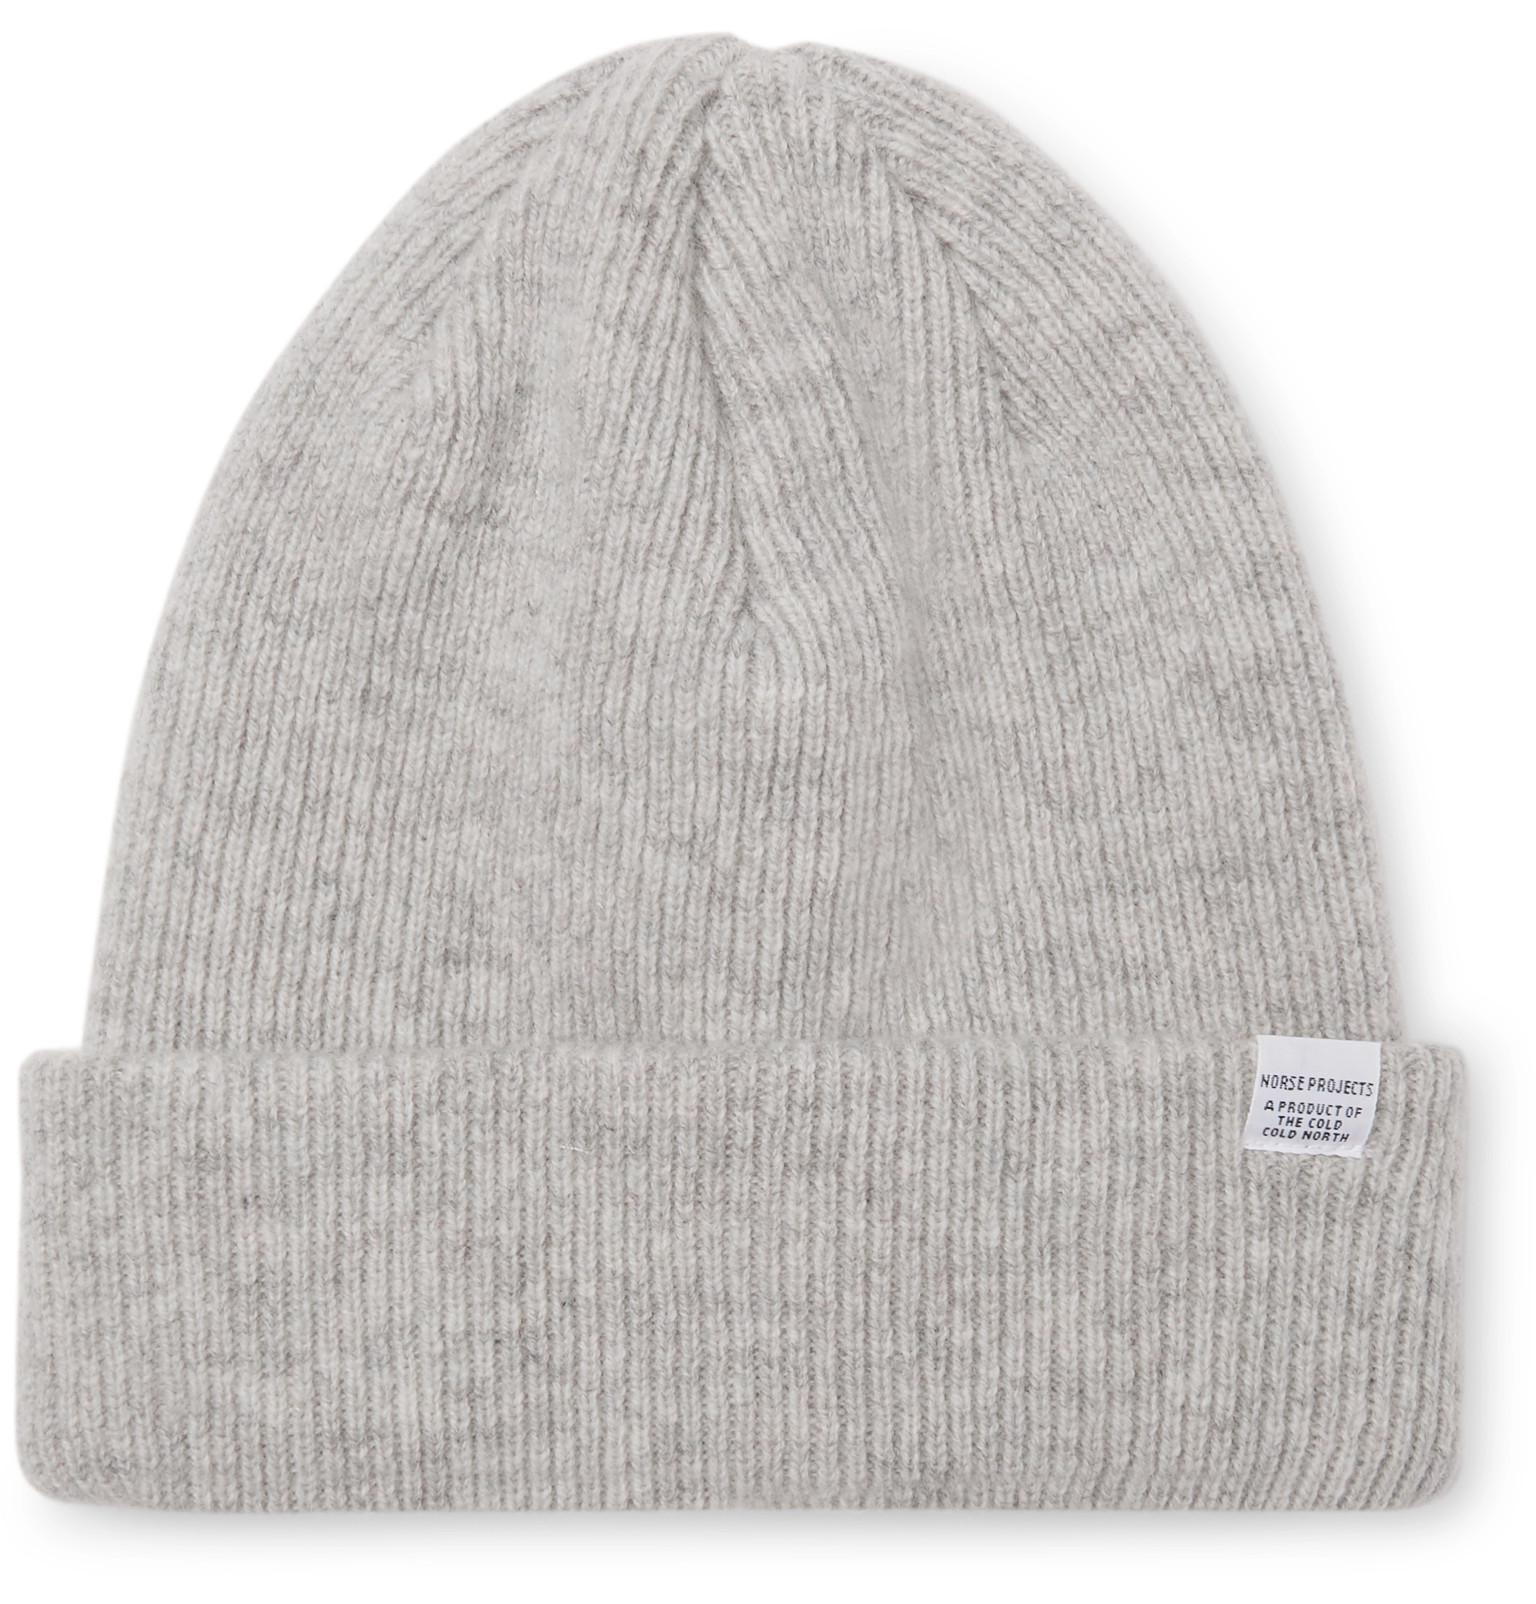 567ec9c67e7 Norse Projects Ribbed Mélange Merino Wool Beanie in Gray for Men - Lyst